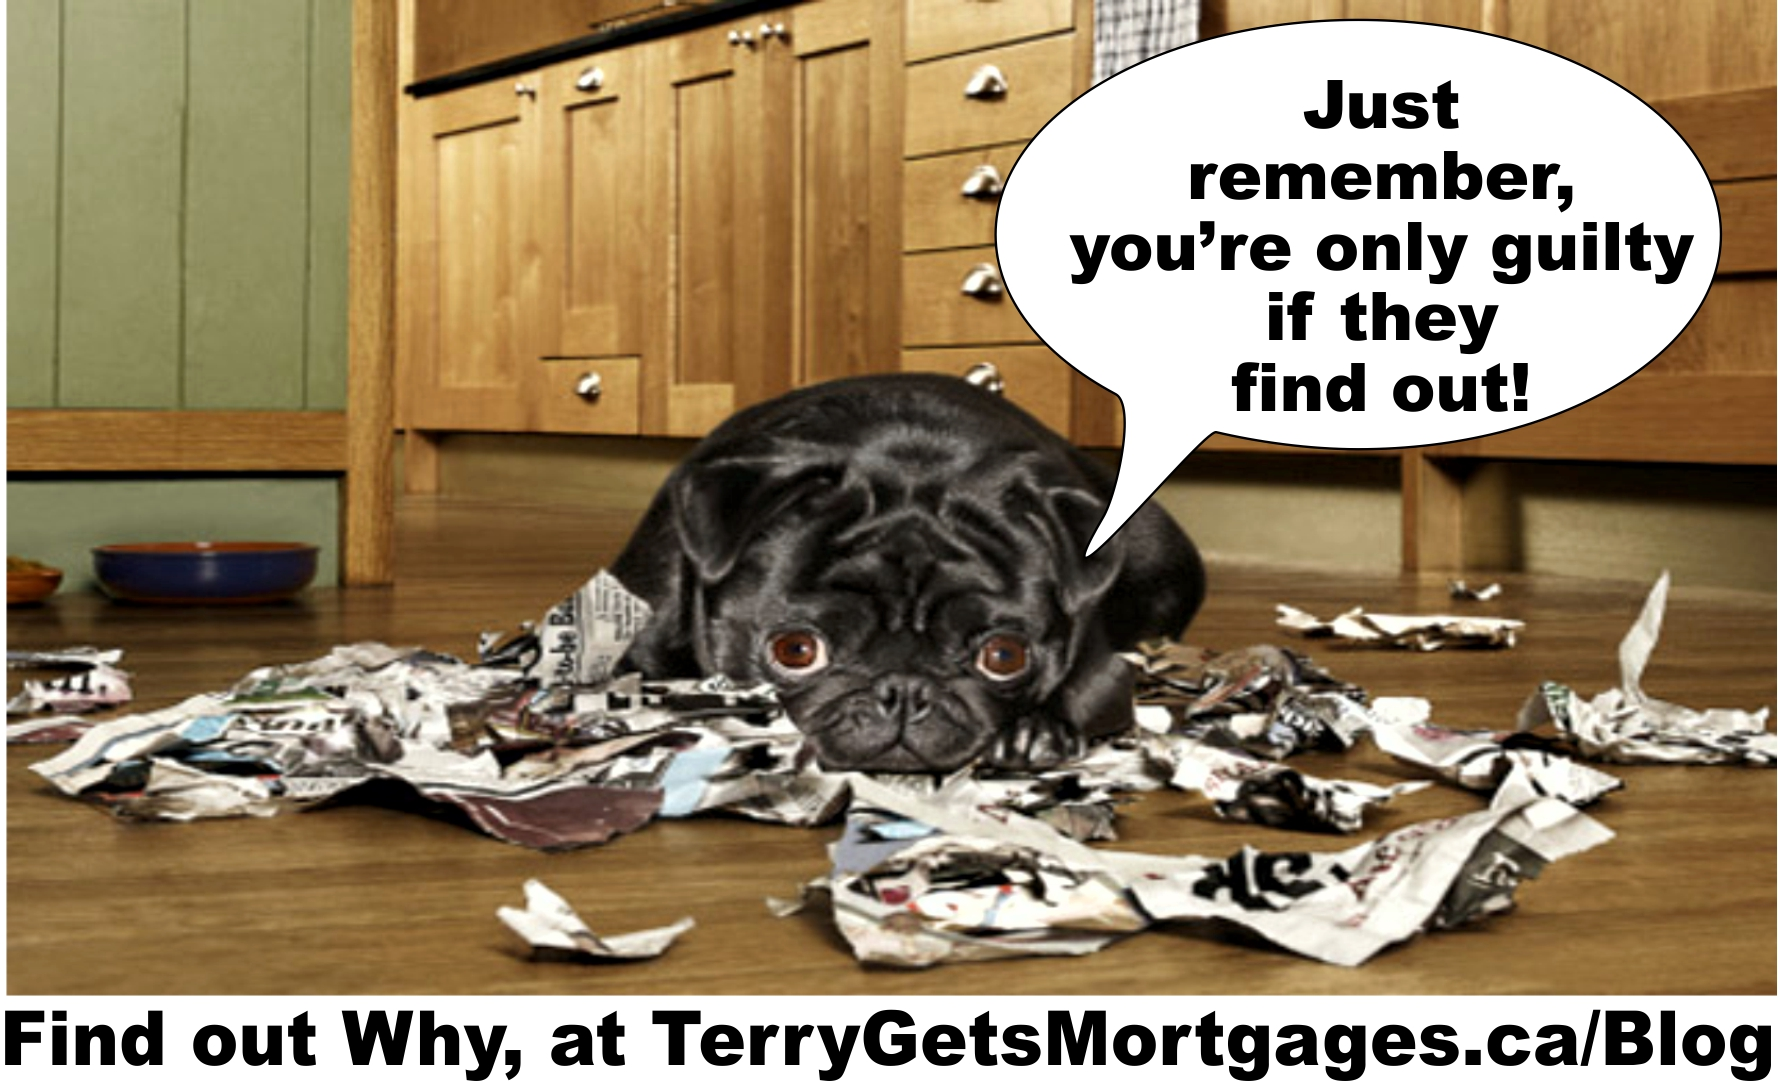 Tell the TRUTH on your Mortgage Applications: Don't get caught in Little White lies – or Fraud!